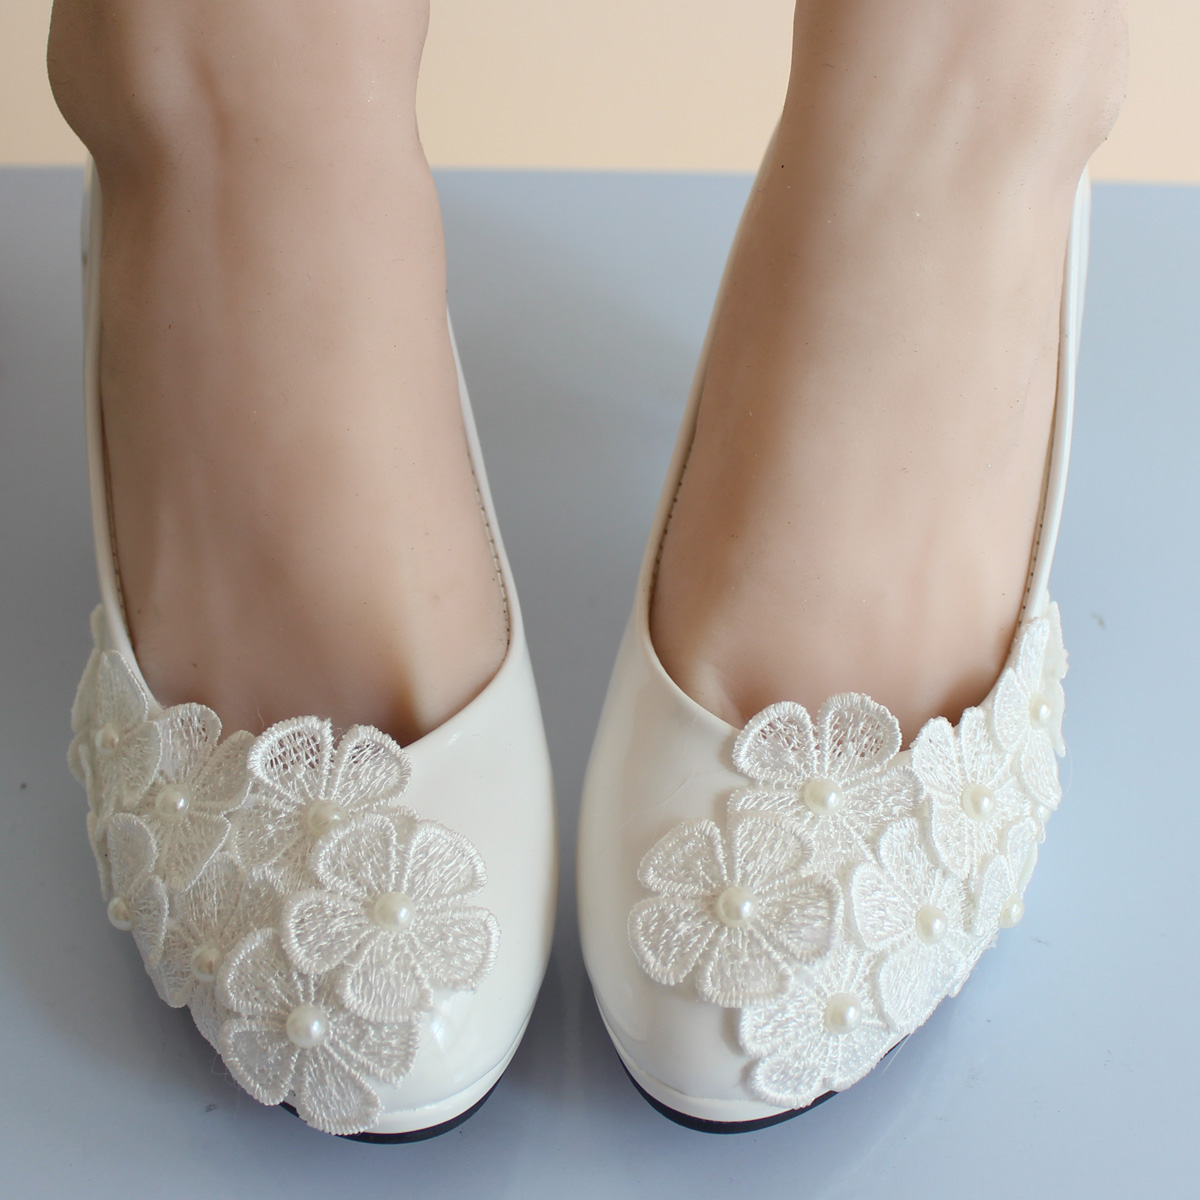 Summer wedding shoes pearl flower bridesmaid bridal shoes white shoes women pumps<br><br>Aliexpress